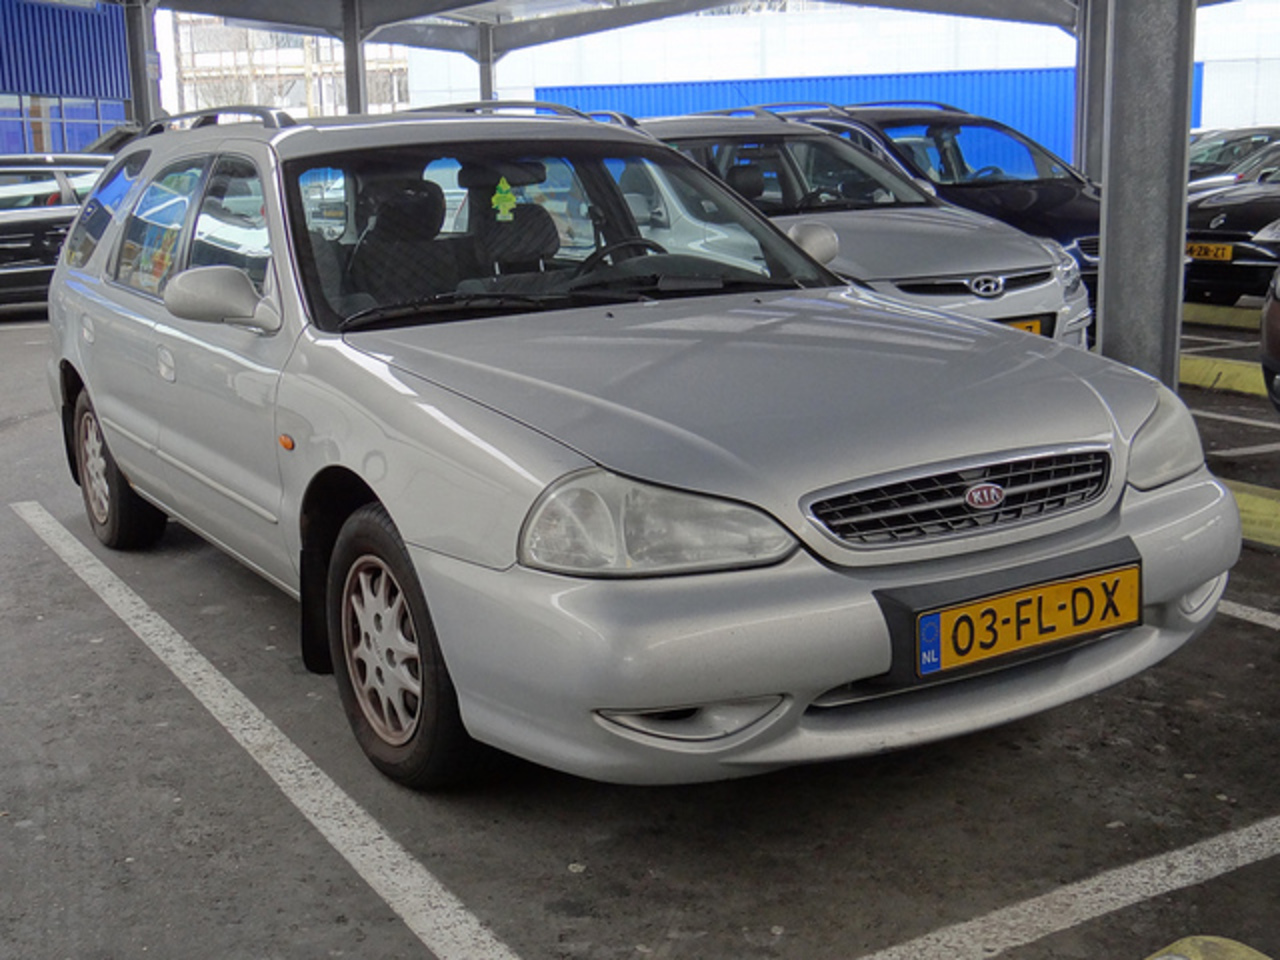 2000 Kia Clarus 1.8i Station Wagon | Flickr - Photo Sharing!